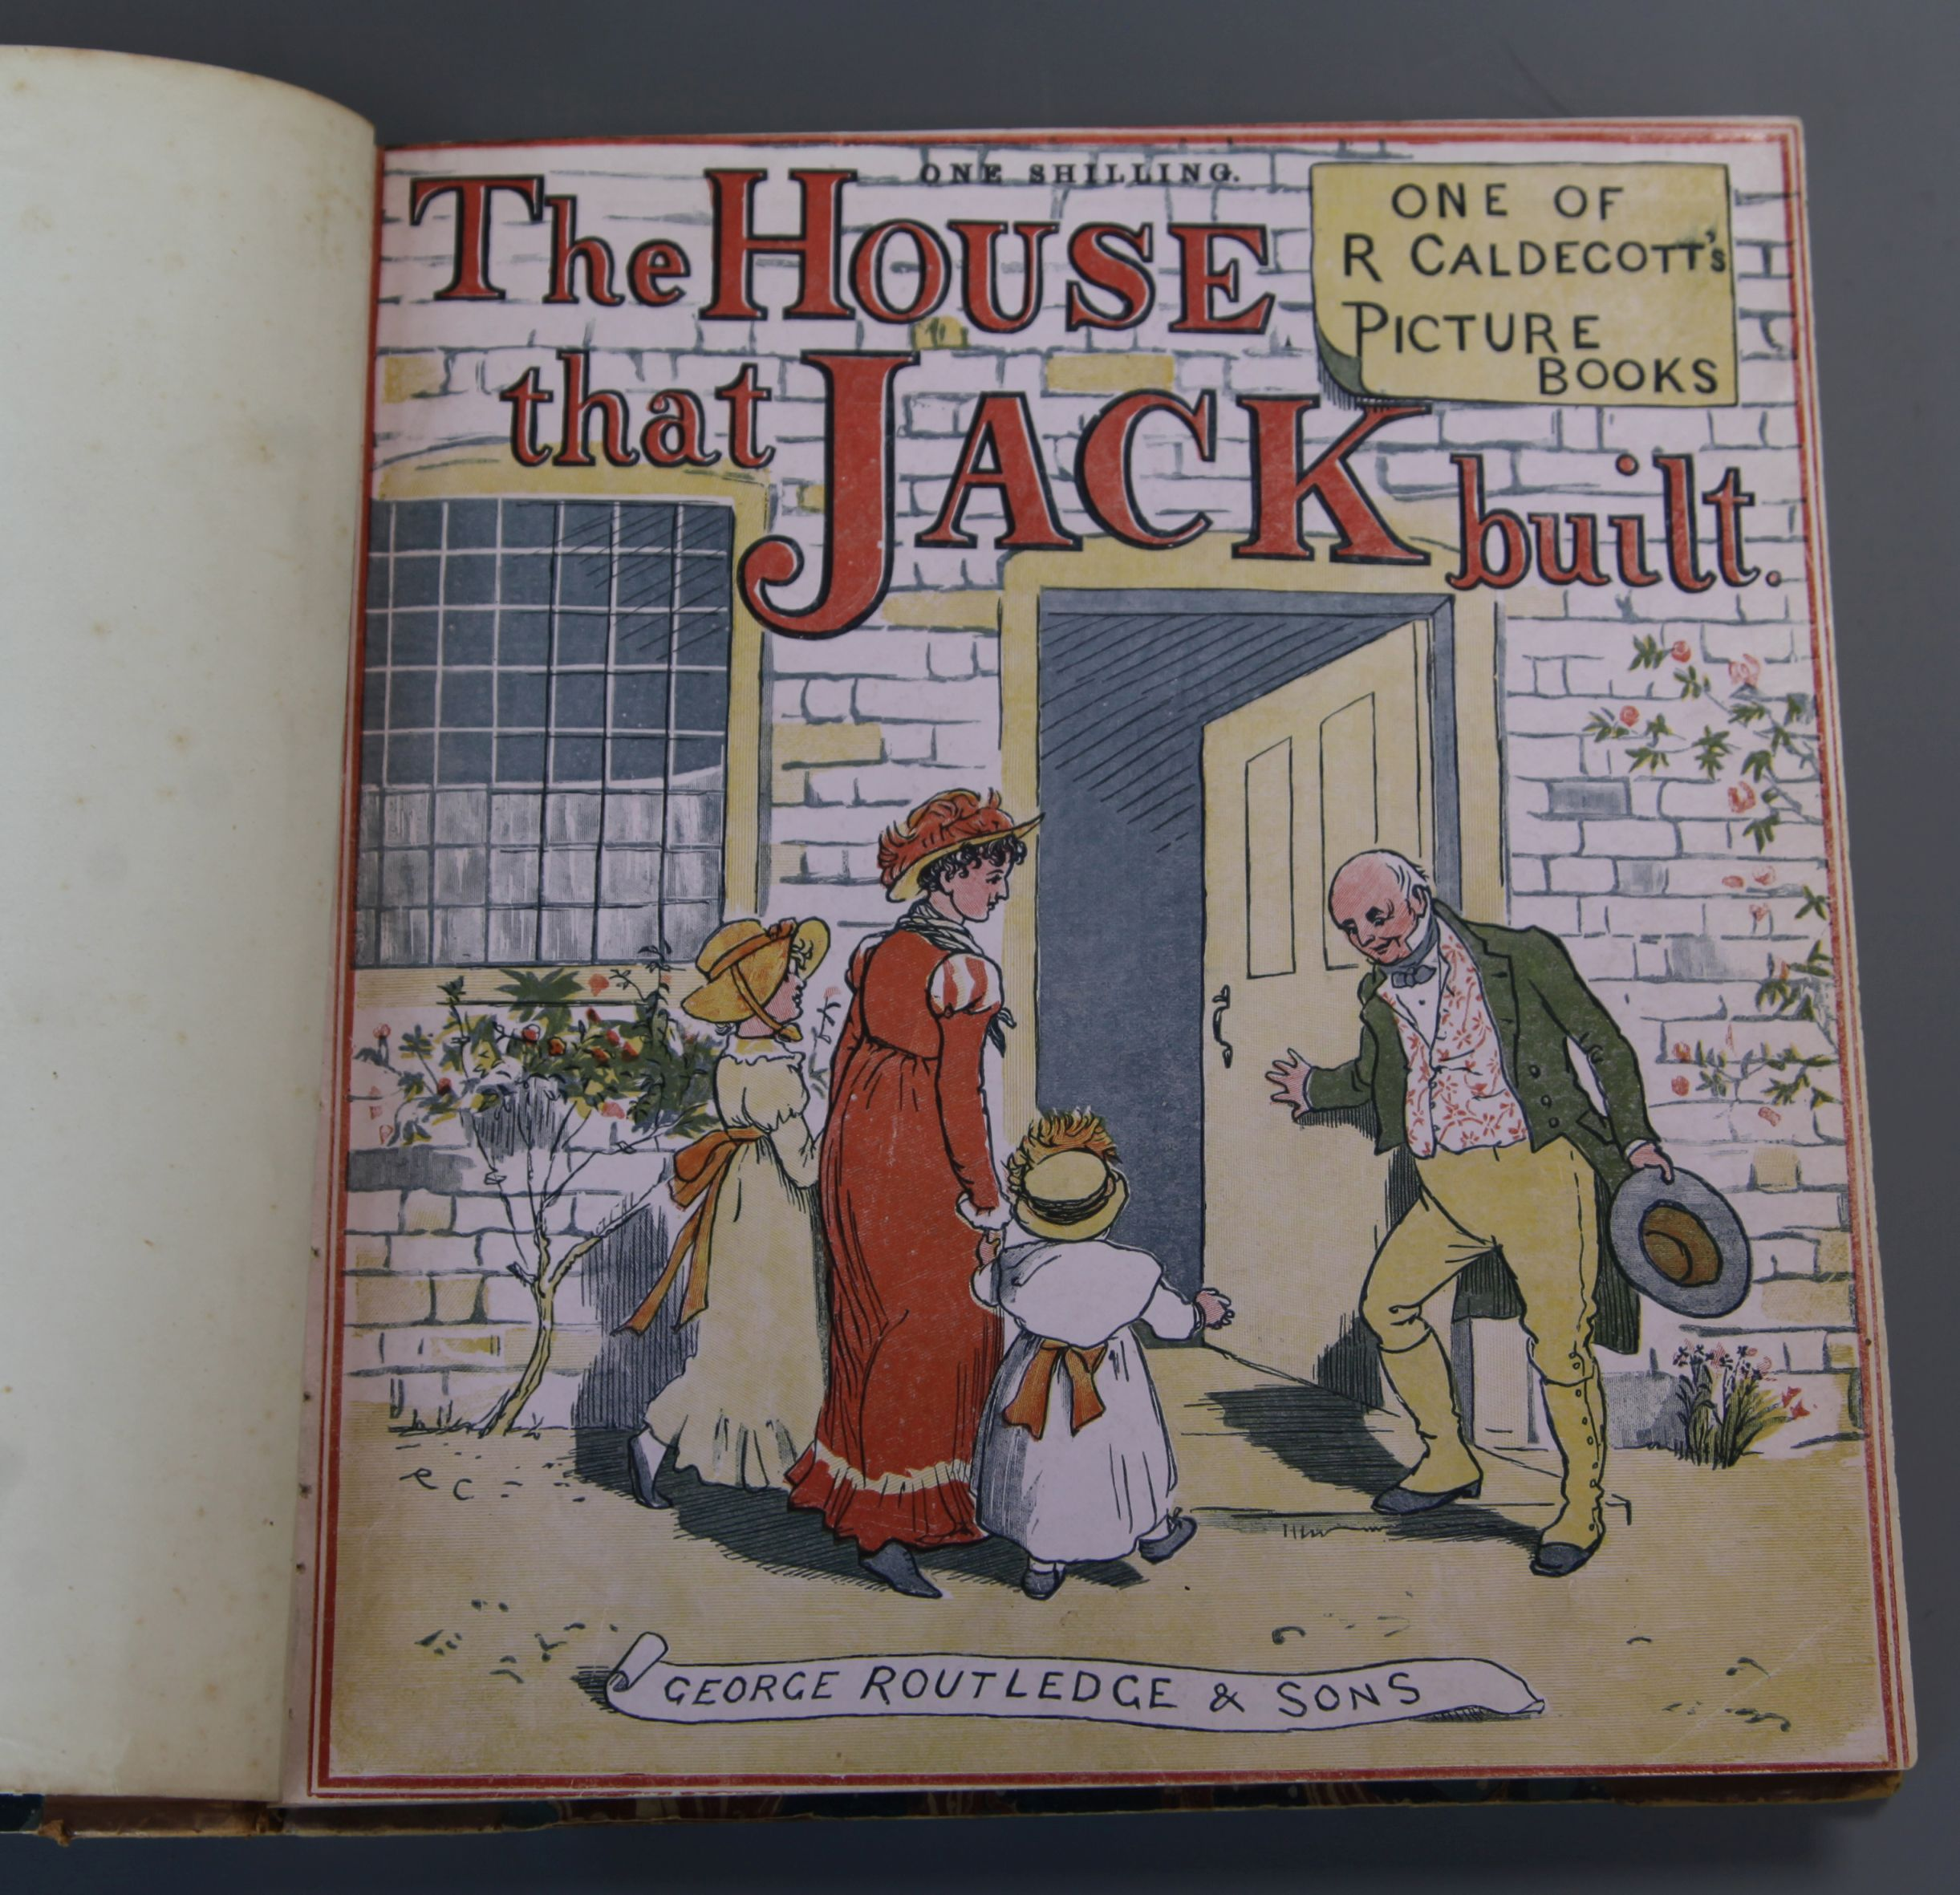 Lot 22 - Caldecott, Randolph - Sixteen picture books, bound in 3 vols, including:- The House that Jack